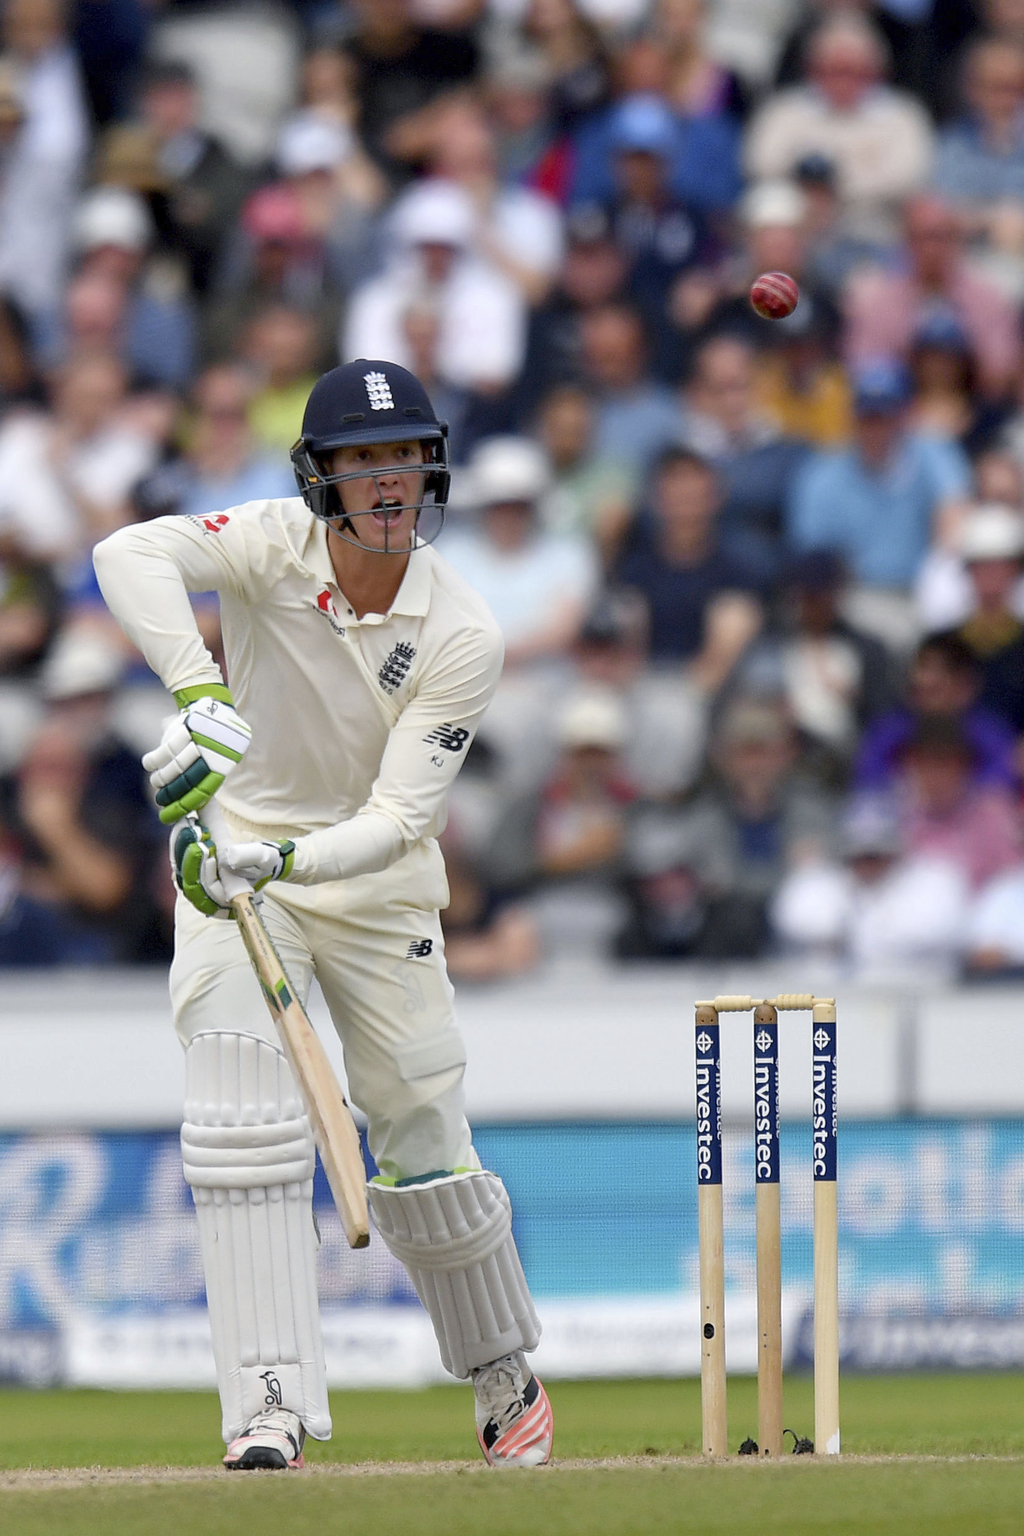 England's Keaton Jennings in action during the match against South African during day three of the Fourth Test match at Emirates Old Trafford in Manch...